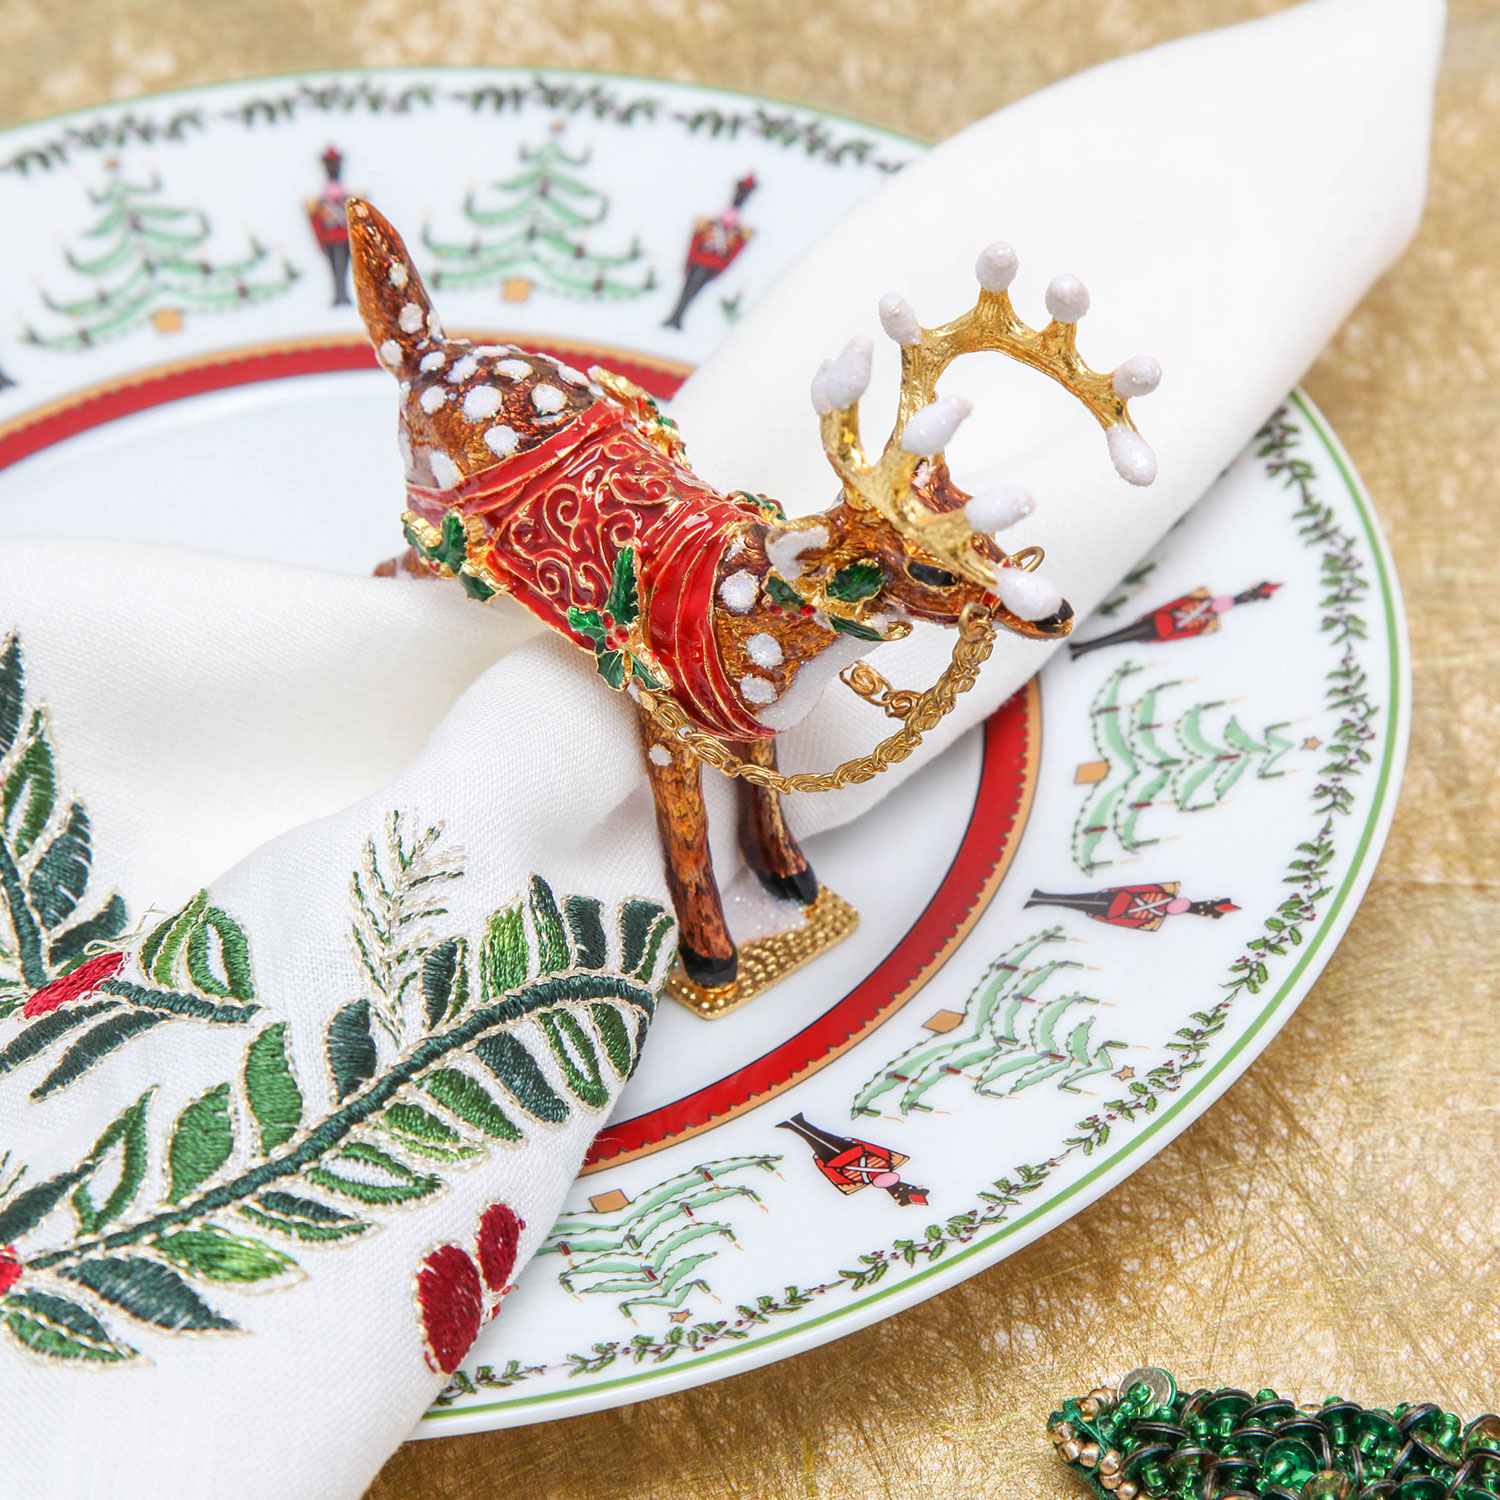 Gearys holiday hosting registry ideas dasher napkin ring by kim seybert reindeer holiday decor